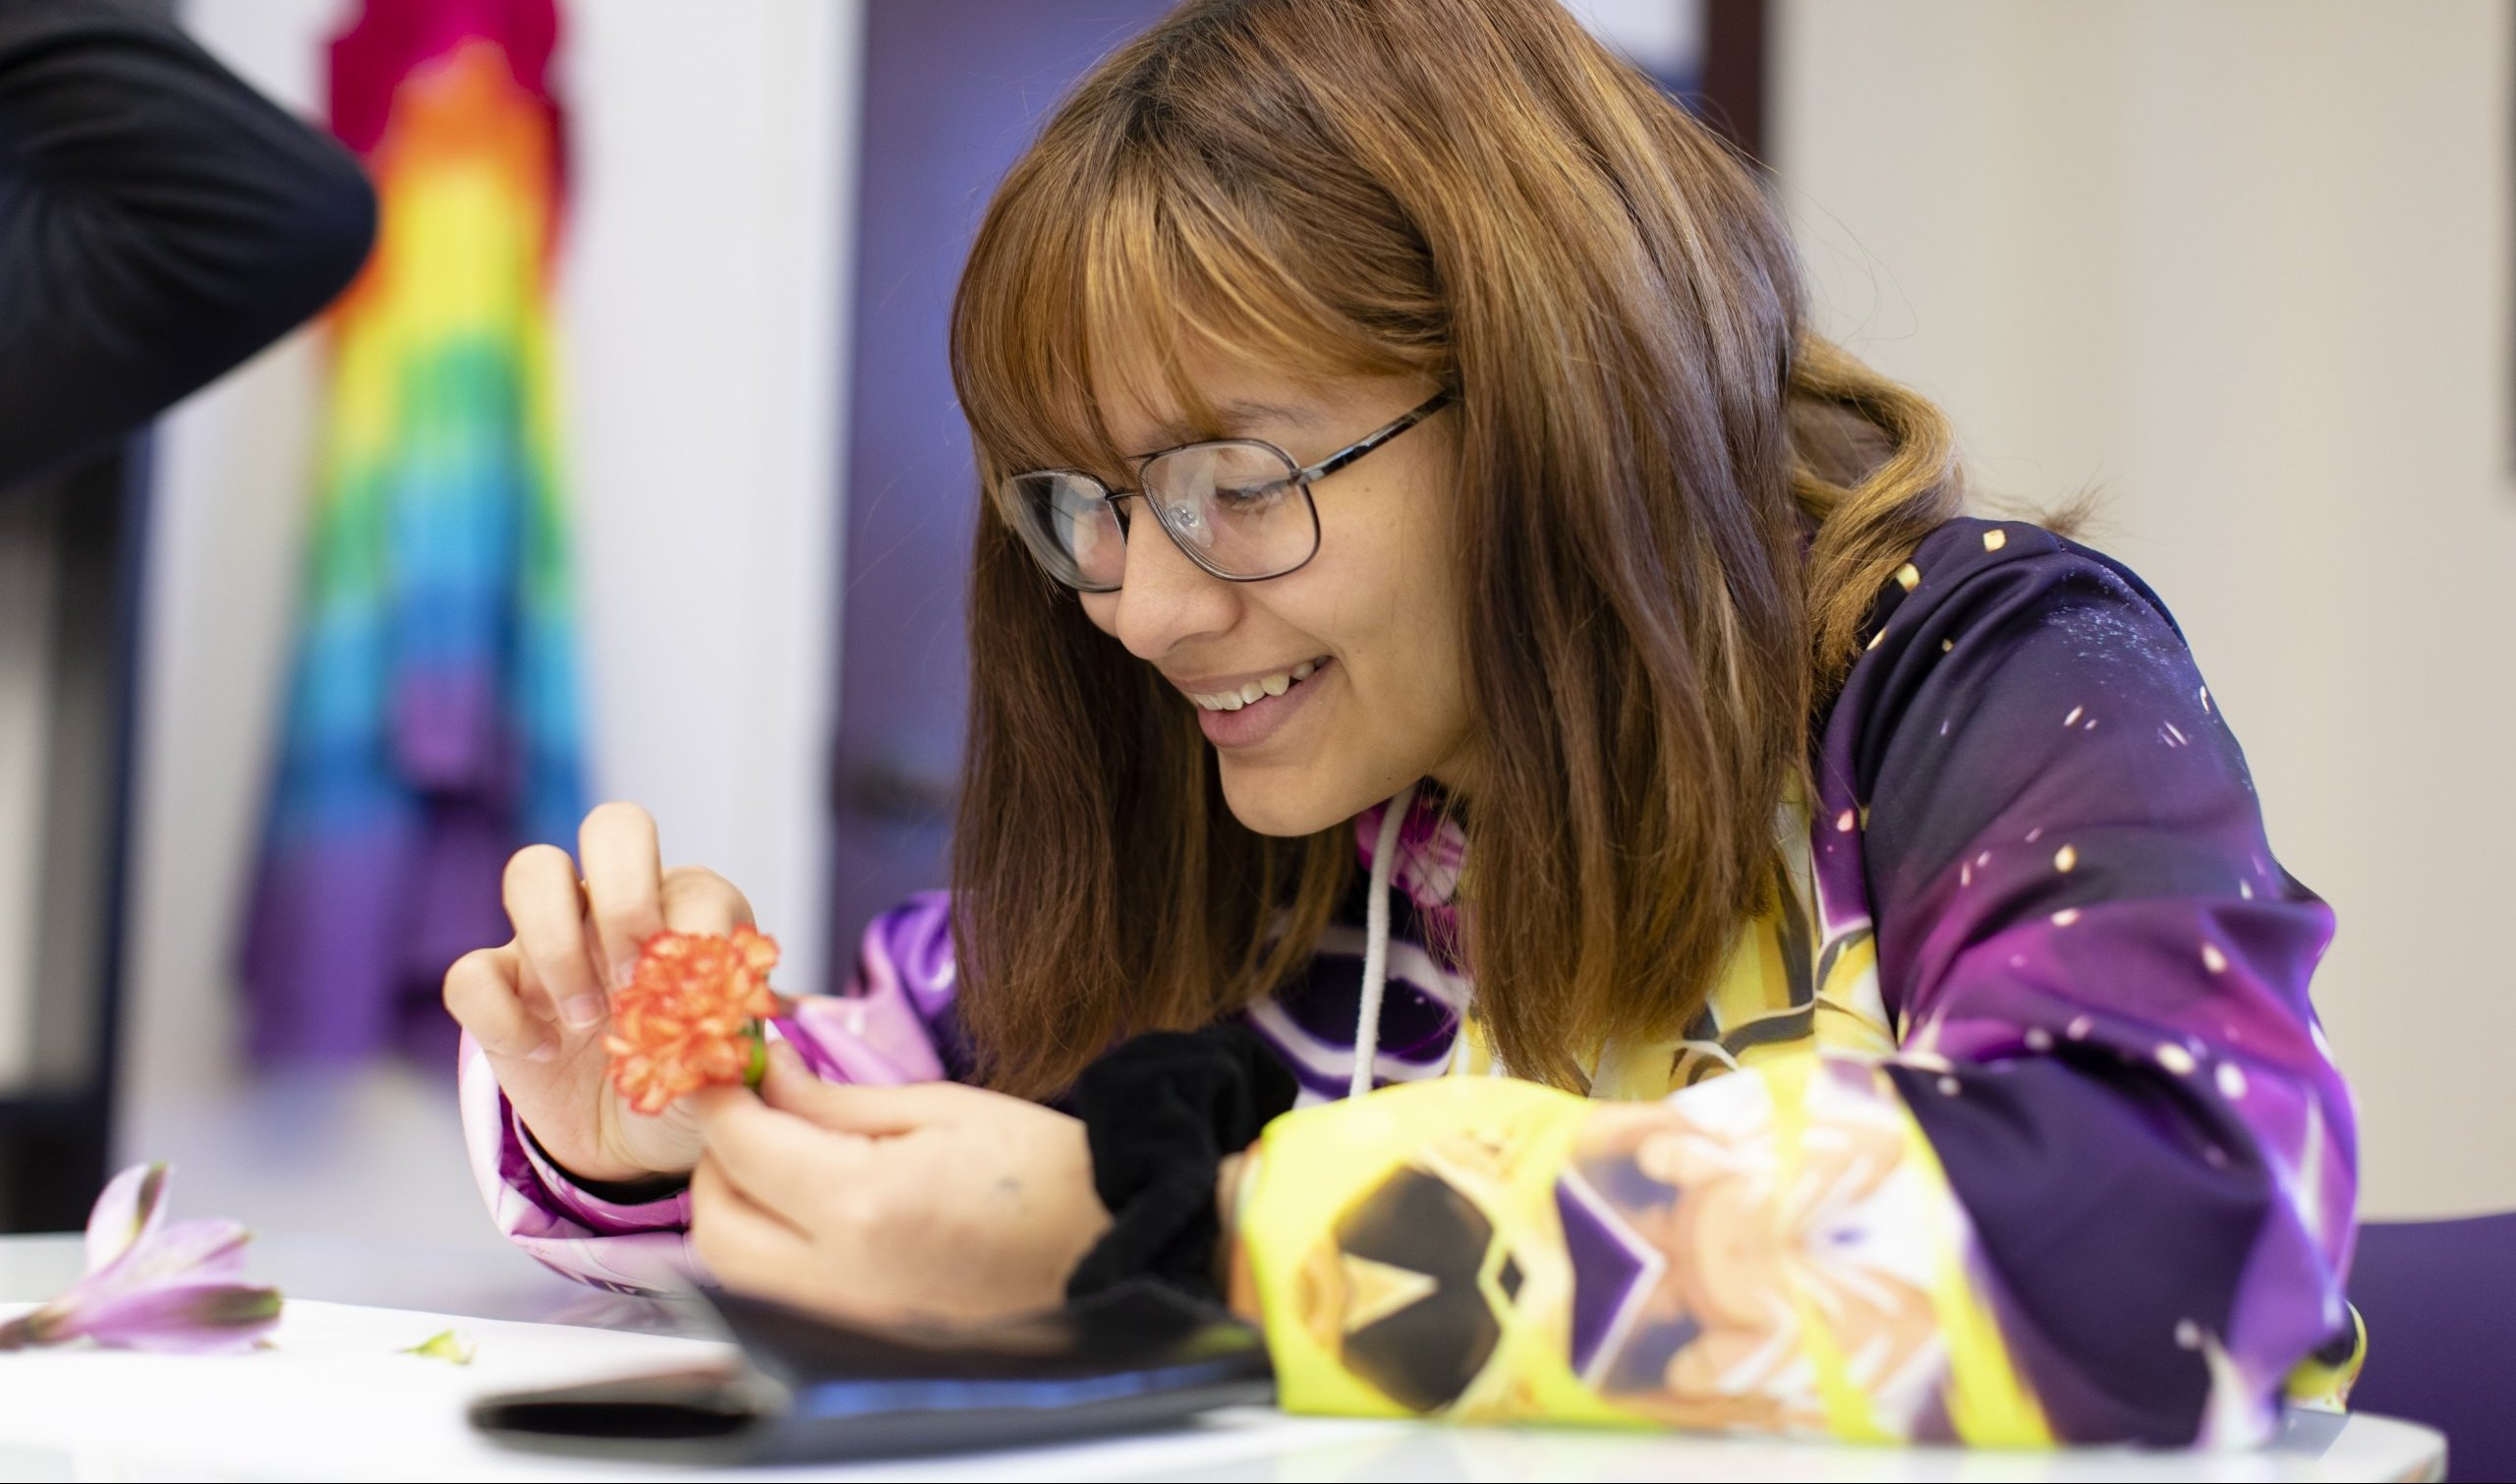 A Quest Forward Academy student smiles while dissecting a flower in a bright classroom.